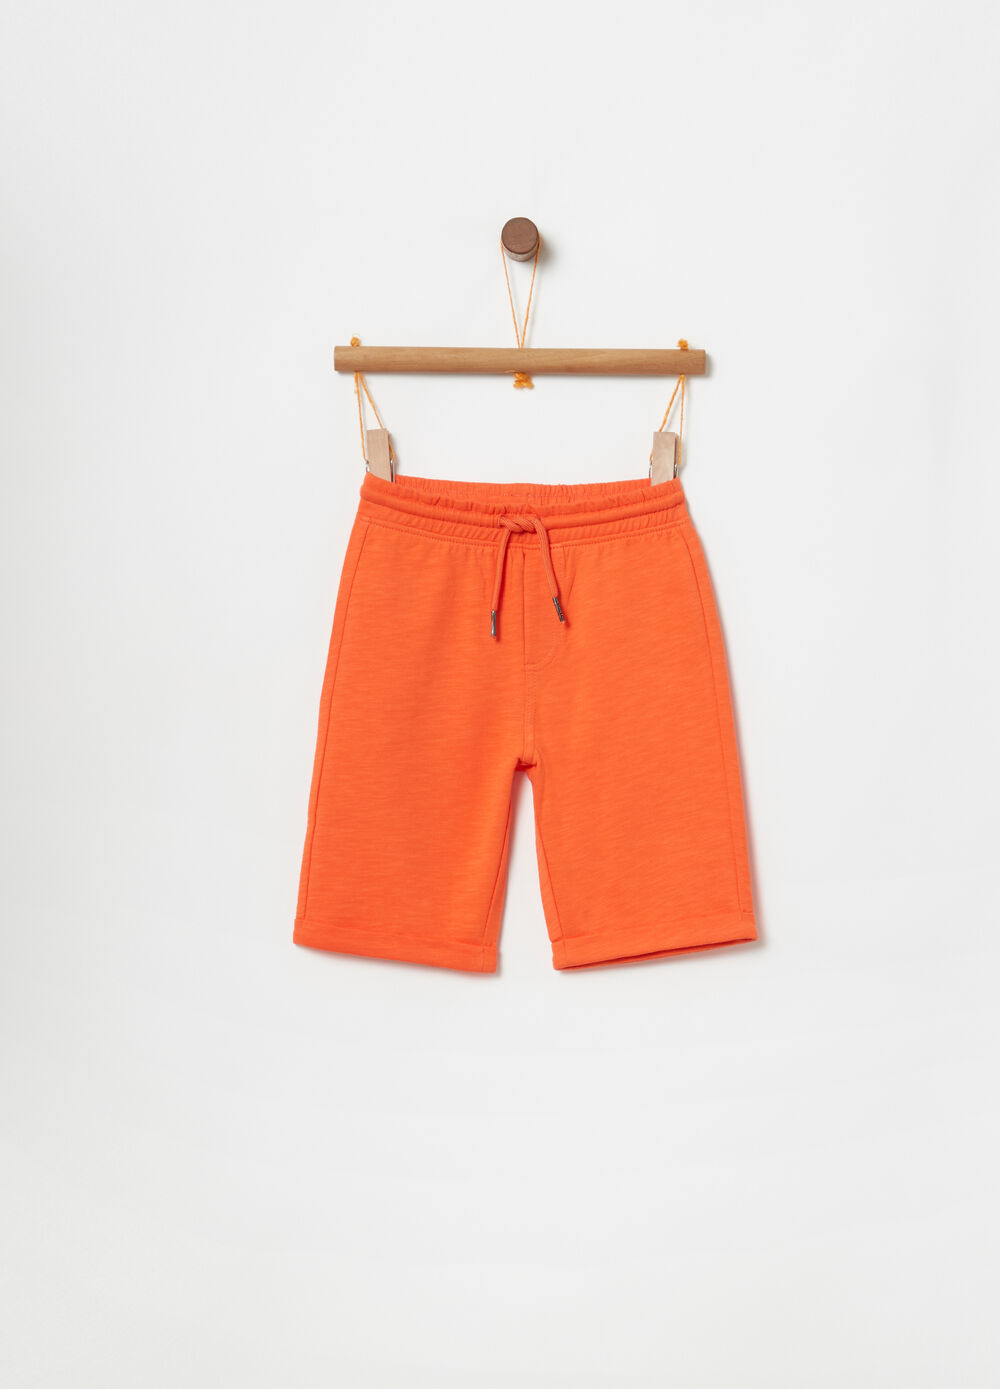 Shorts in felpa leggera con coulisse